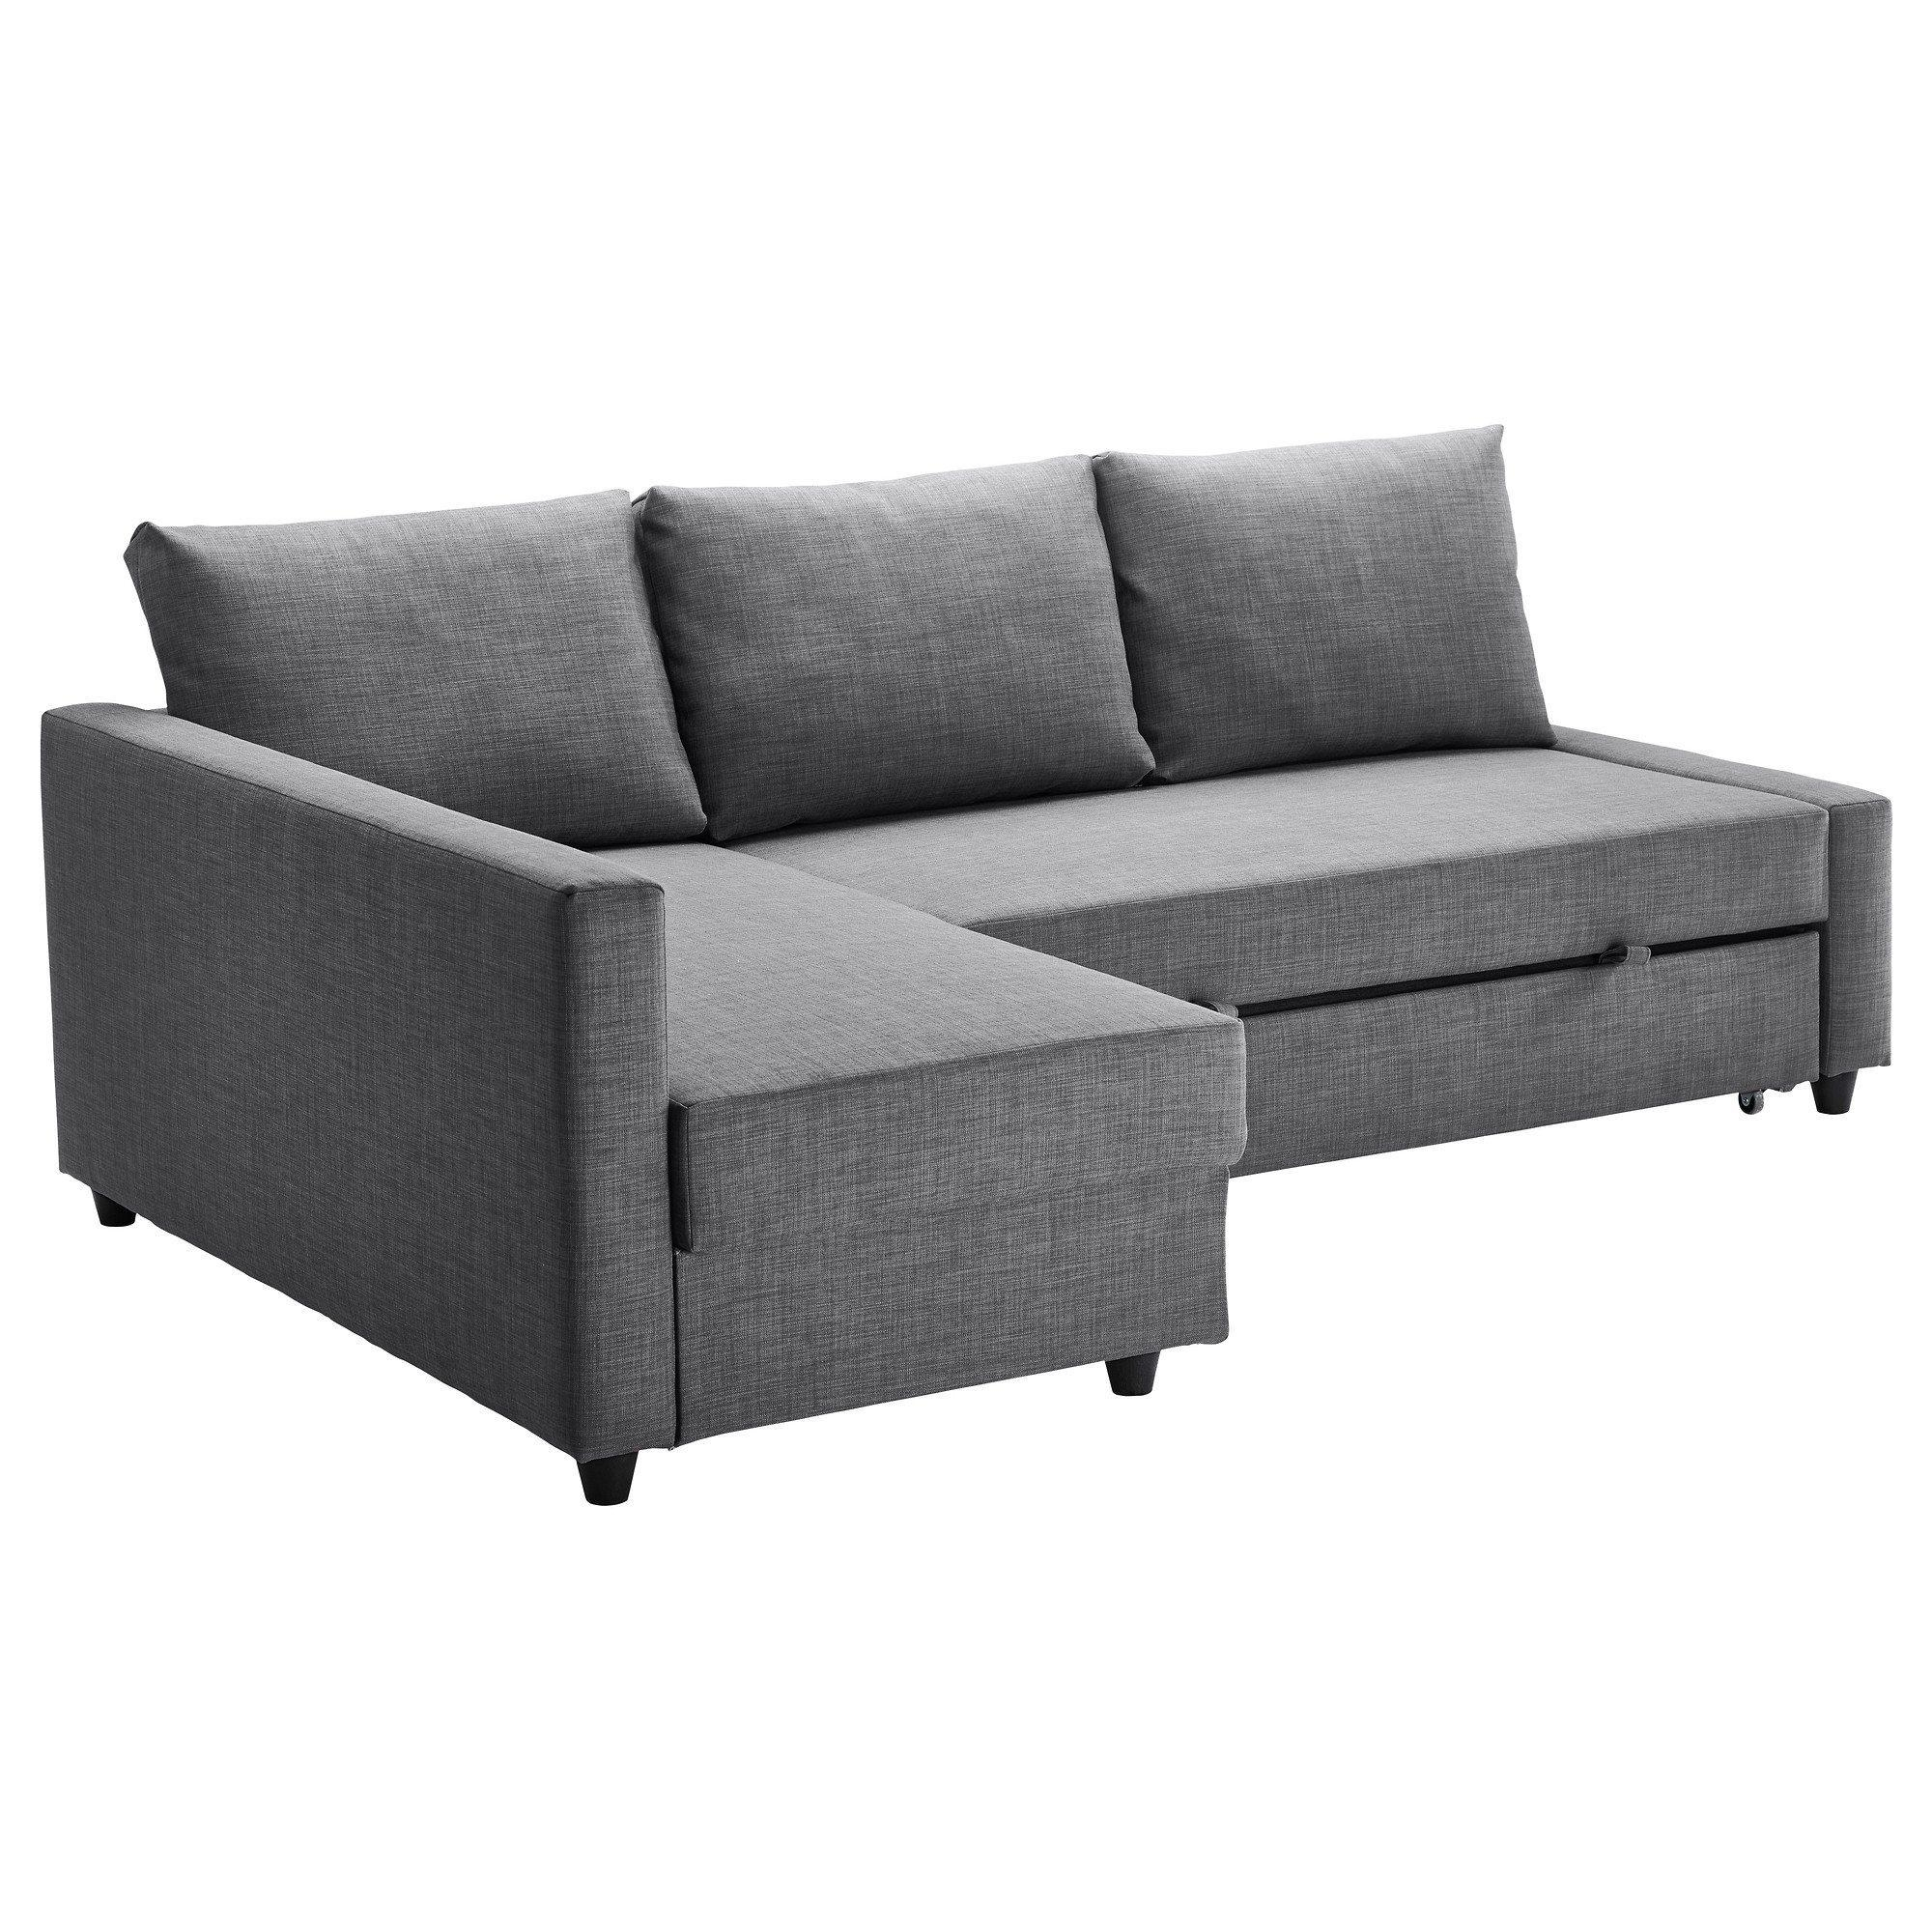 20 best collection of sleeper sofa sectional ikea sofa ideas for Sofa jugendzimmer ikea